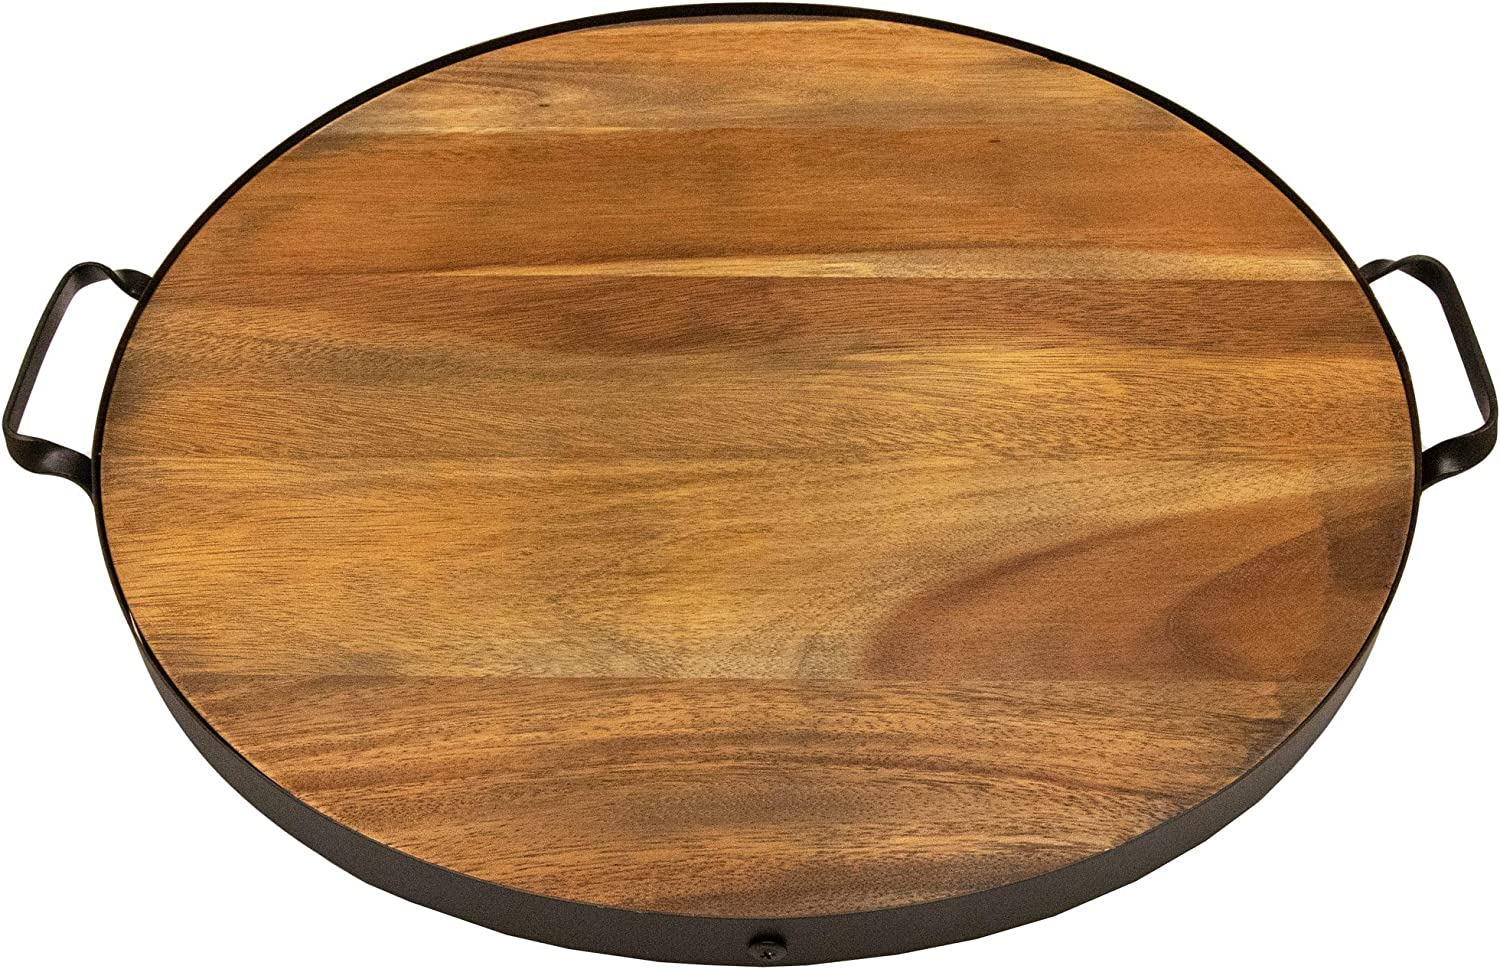 Villa Acacia 18 Inch Round Serving Tray, Solid Wood with Metal Band and Handles